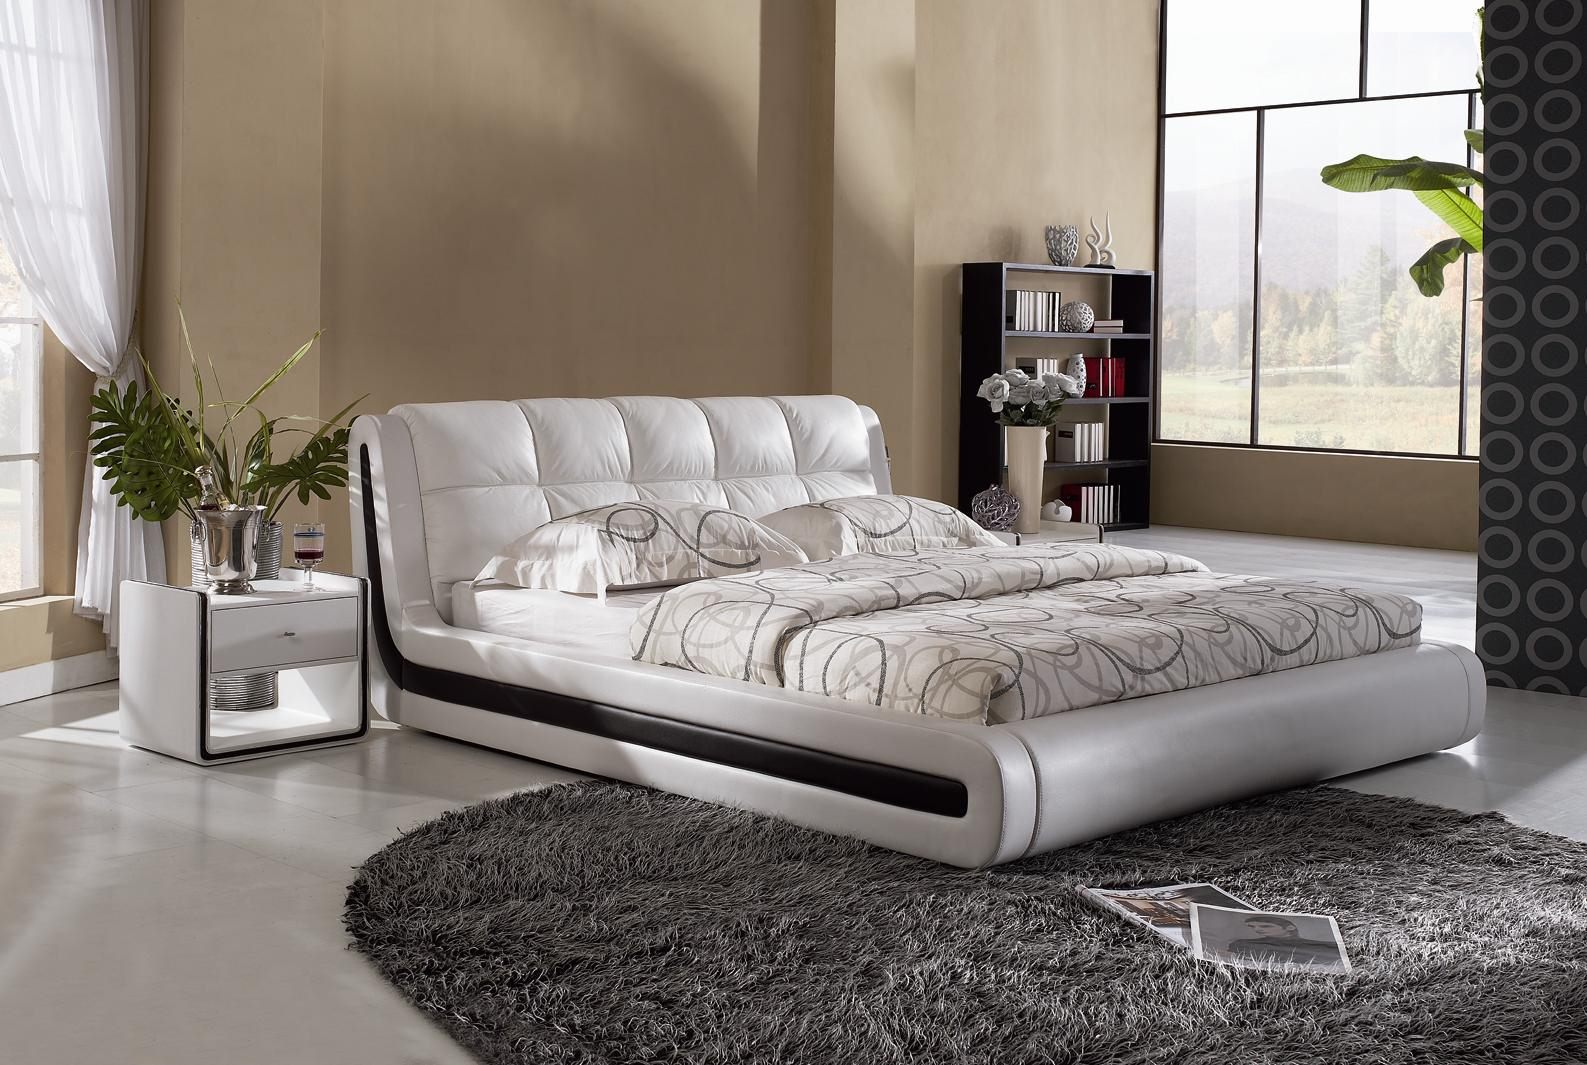 *MG* High Quality Italian Leather Bed Frame #031, 3 size in stock